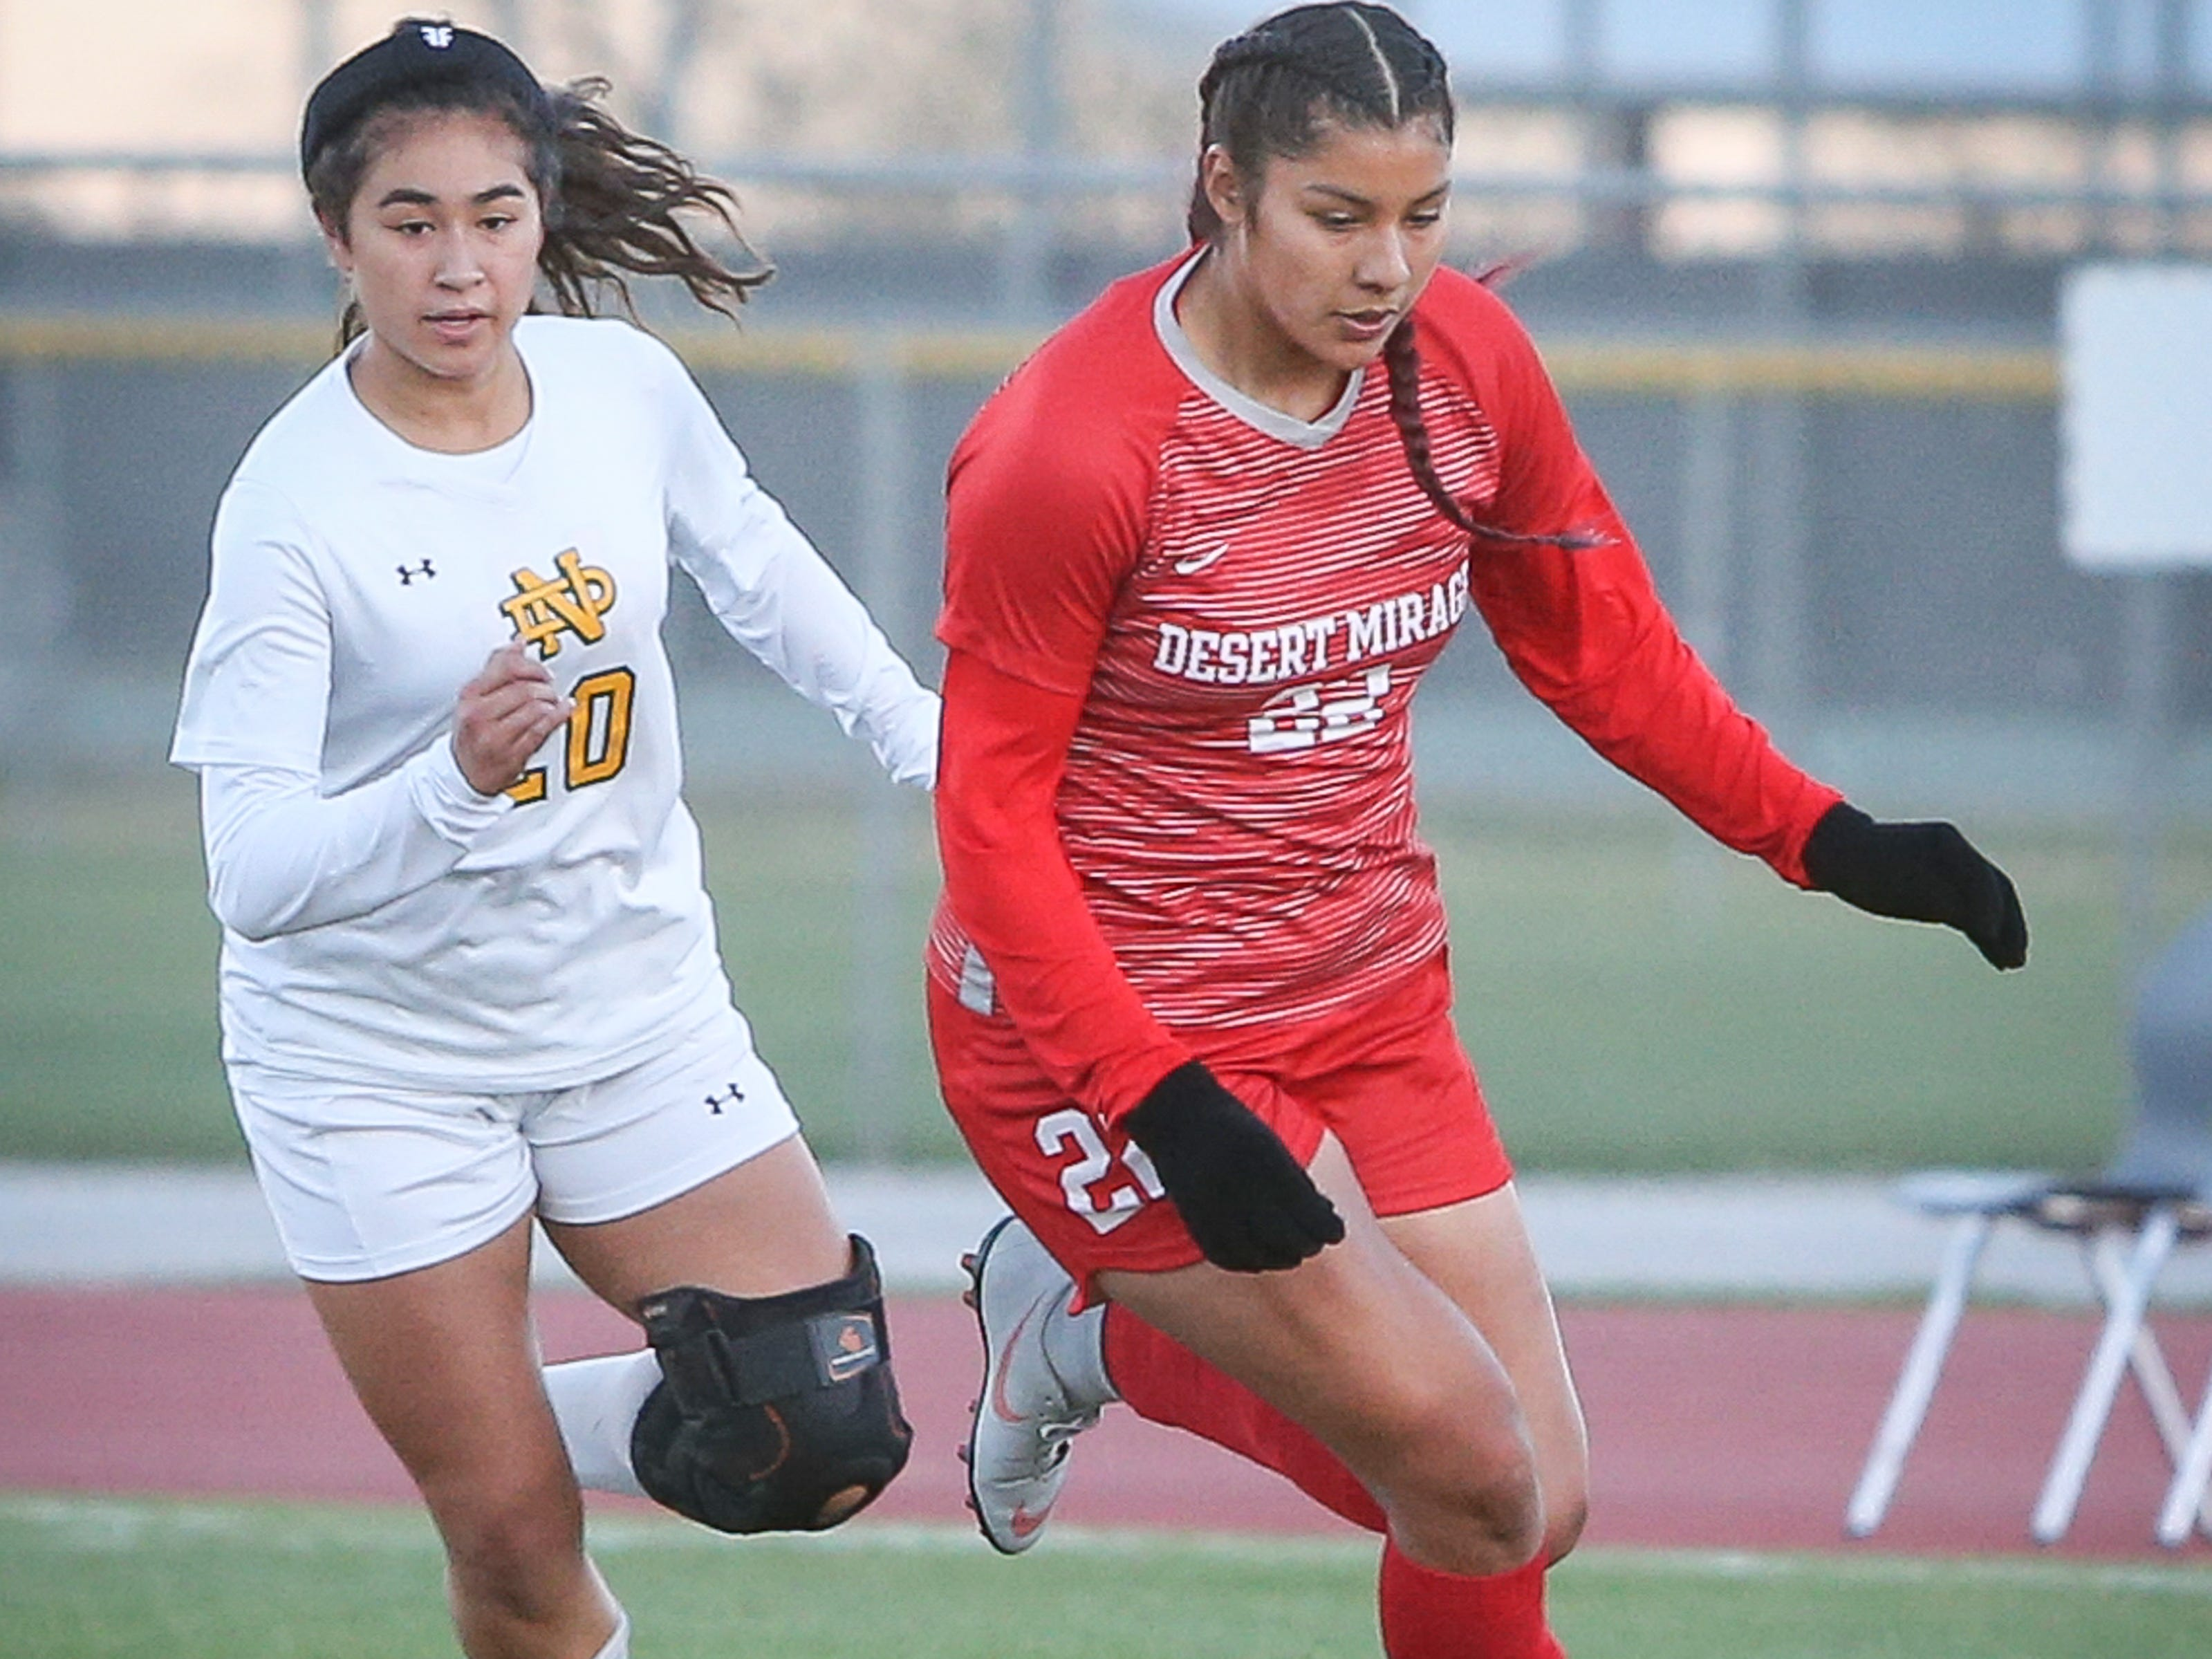 Andrea Lopez dribbling the ball for Desert Mirage. The Desert Mirage varsity soccer team won its first girls' soccer CIF title 1-0 against Notre Dame in overtime.